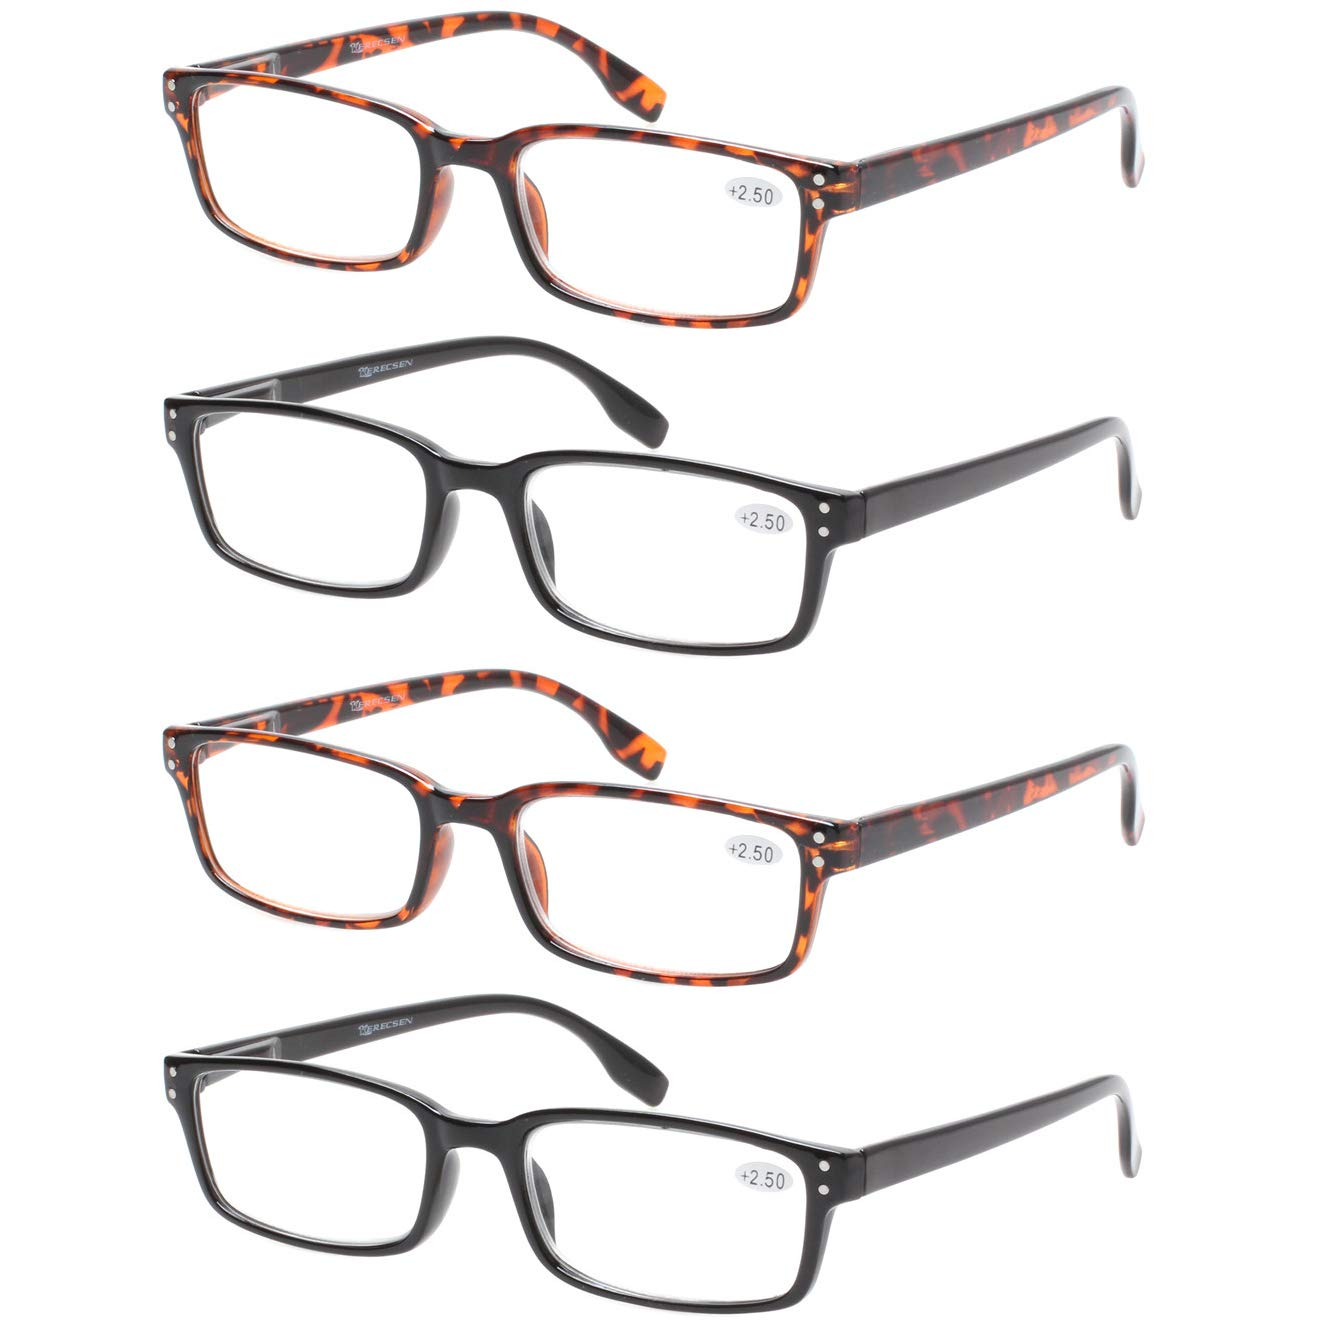 0621ae7a450 READING GLASSES 4 Pack Spring Hinge Comfort Readers Plastic Includes Sun  Readers product image